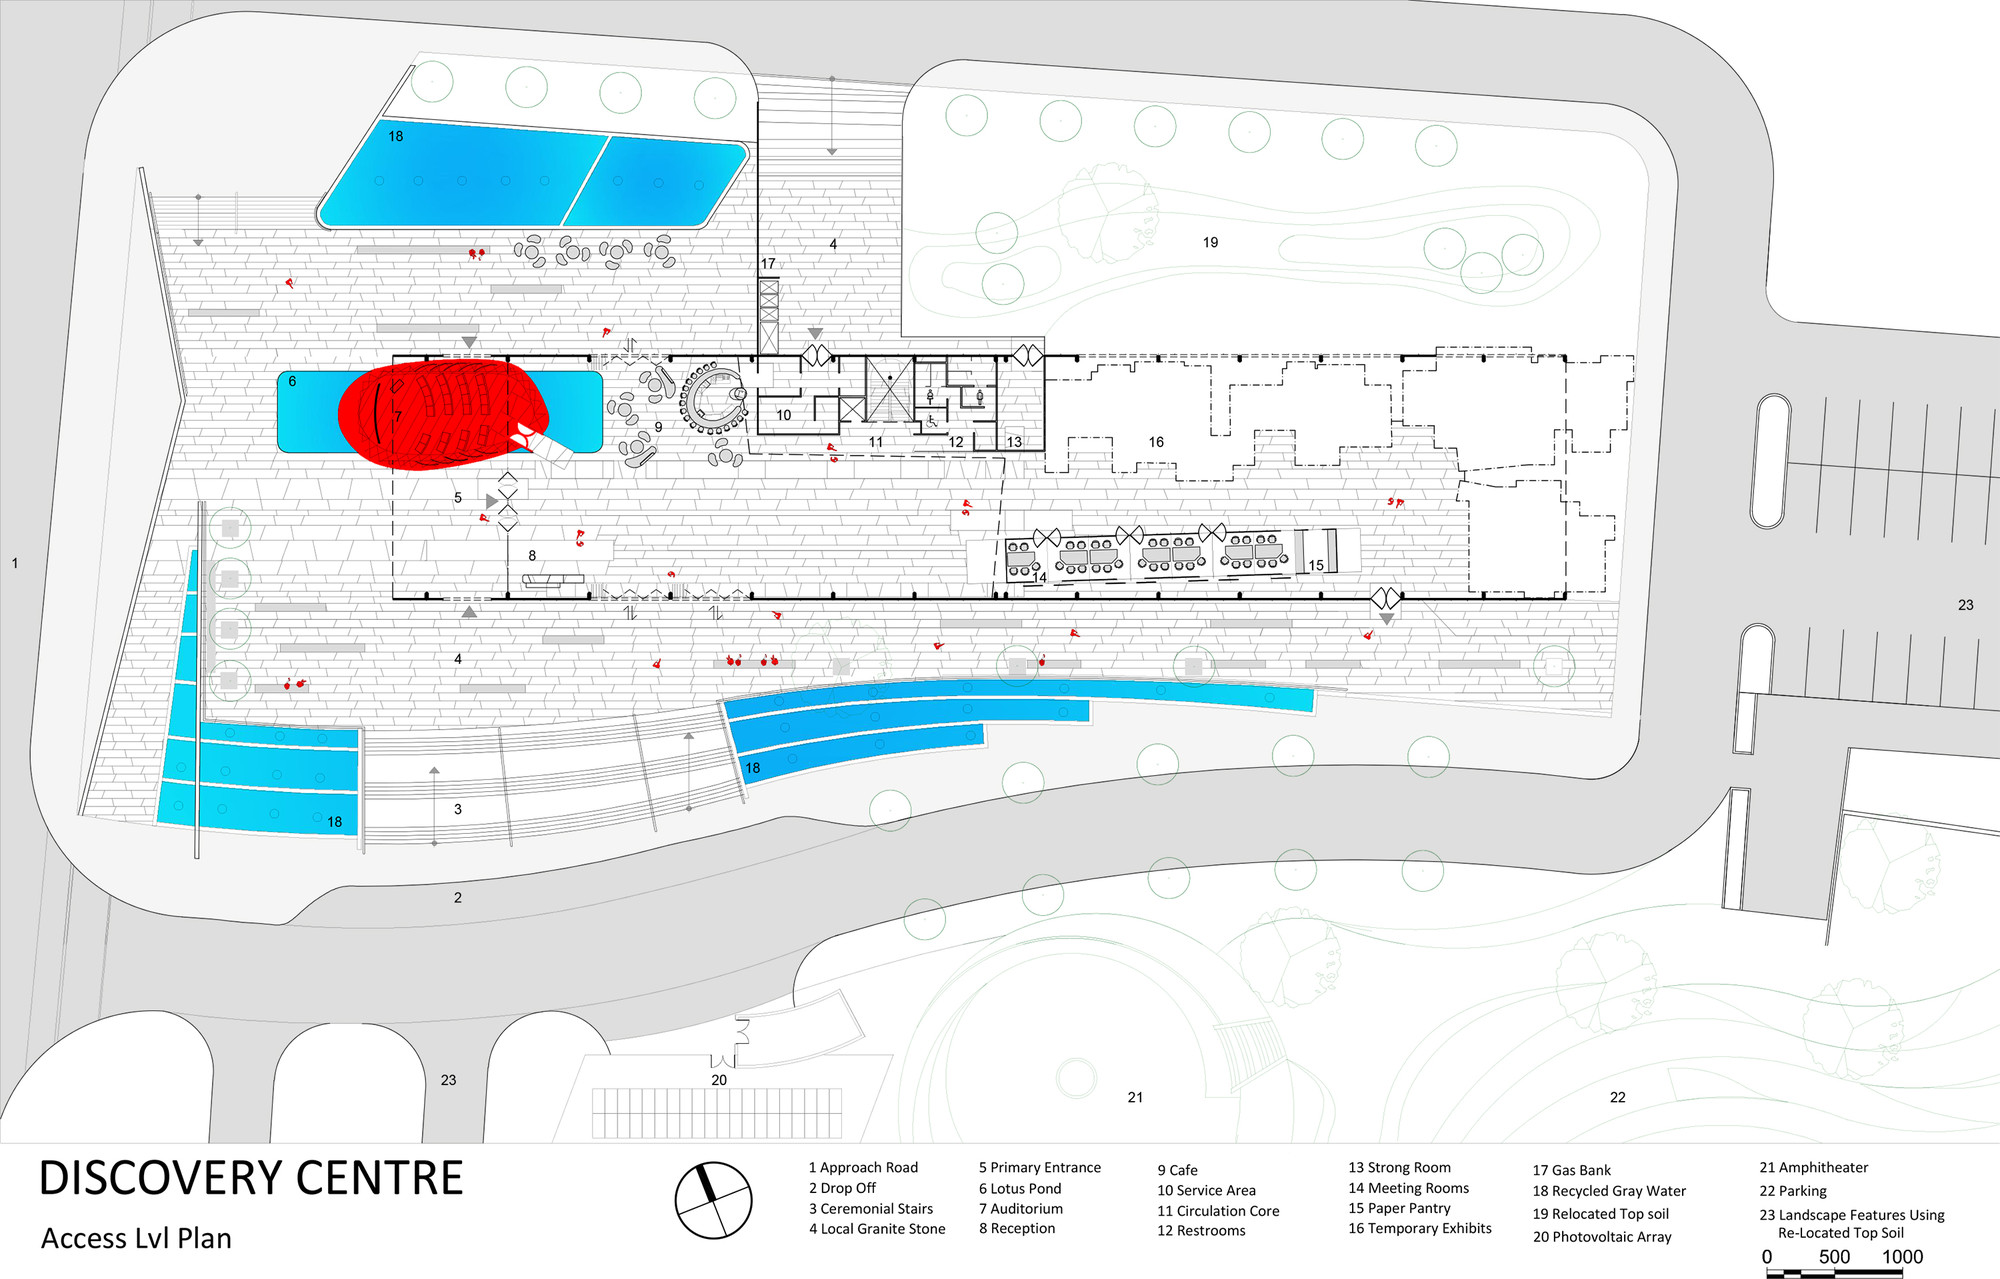 medium resolution of discovery centre site plan diagram